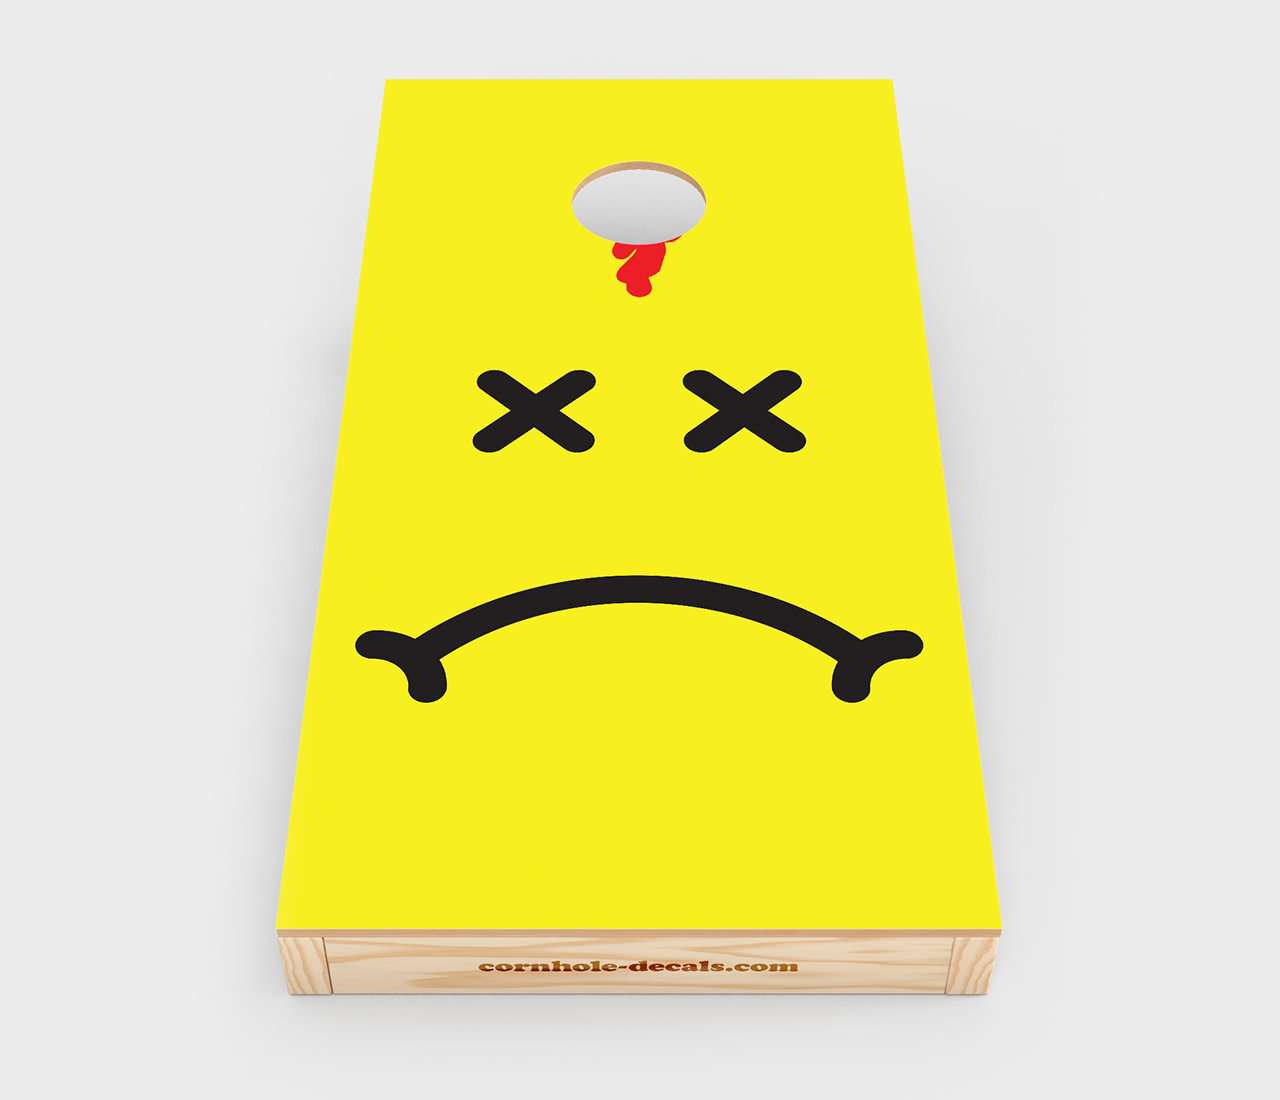 Not-So-Smiley Face Cornhole Decal